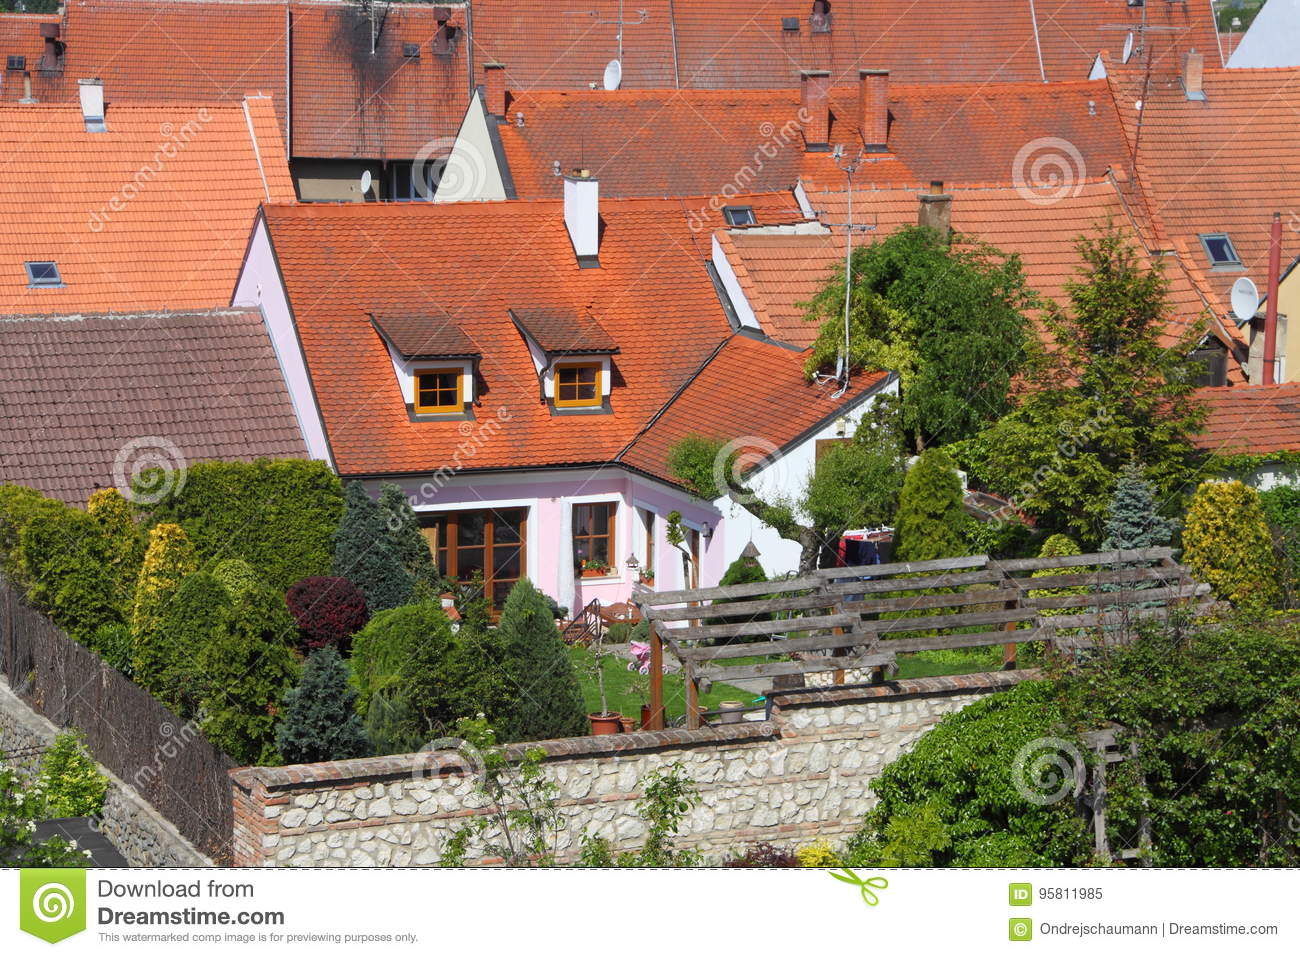 detail od small red roofed house tiny garden roof above